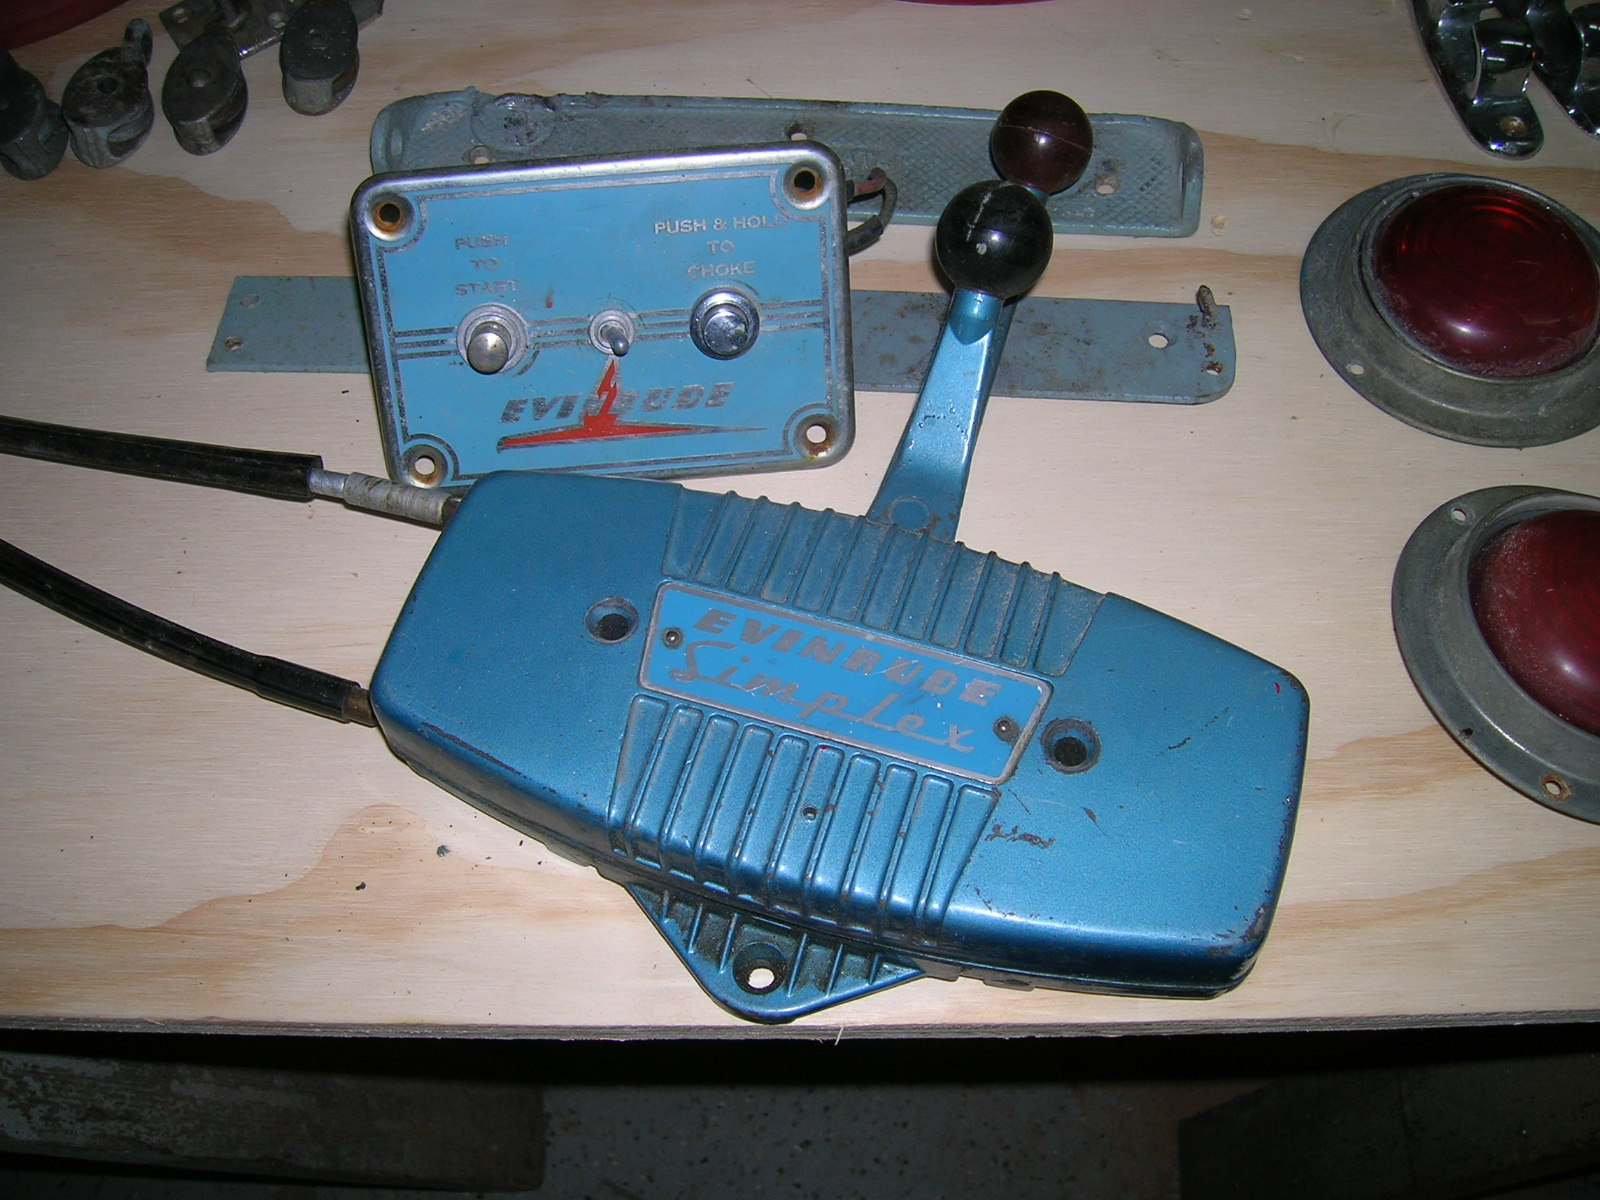 What does a mid-50s Evinrude starter/choke plate and controls look